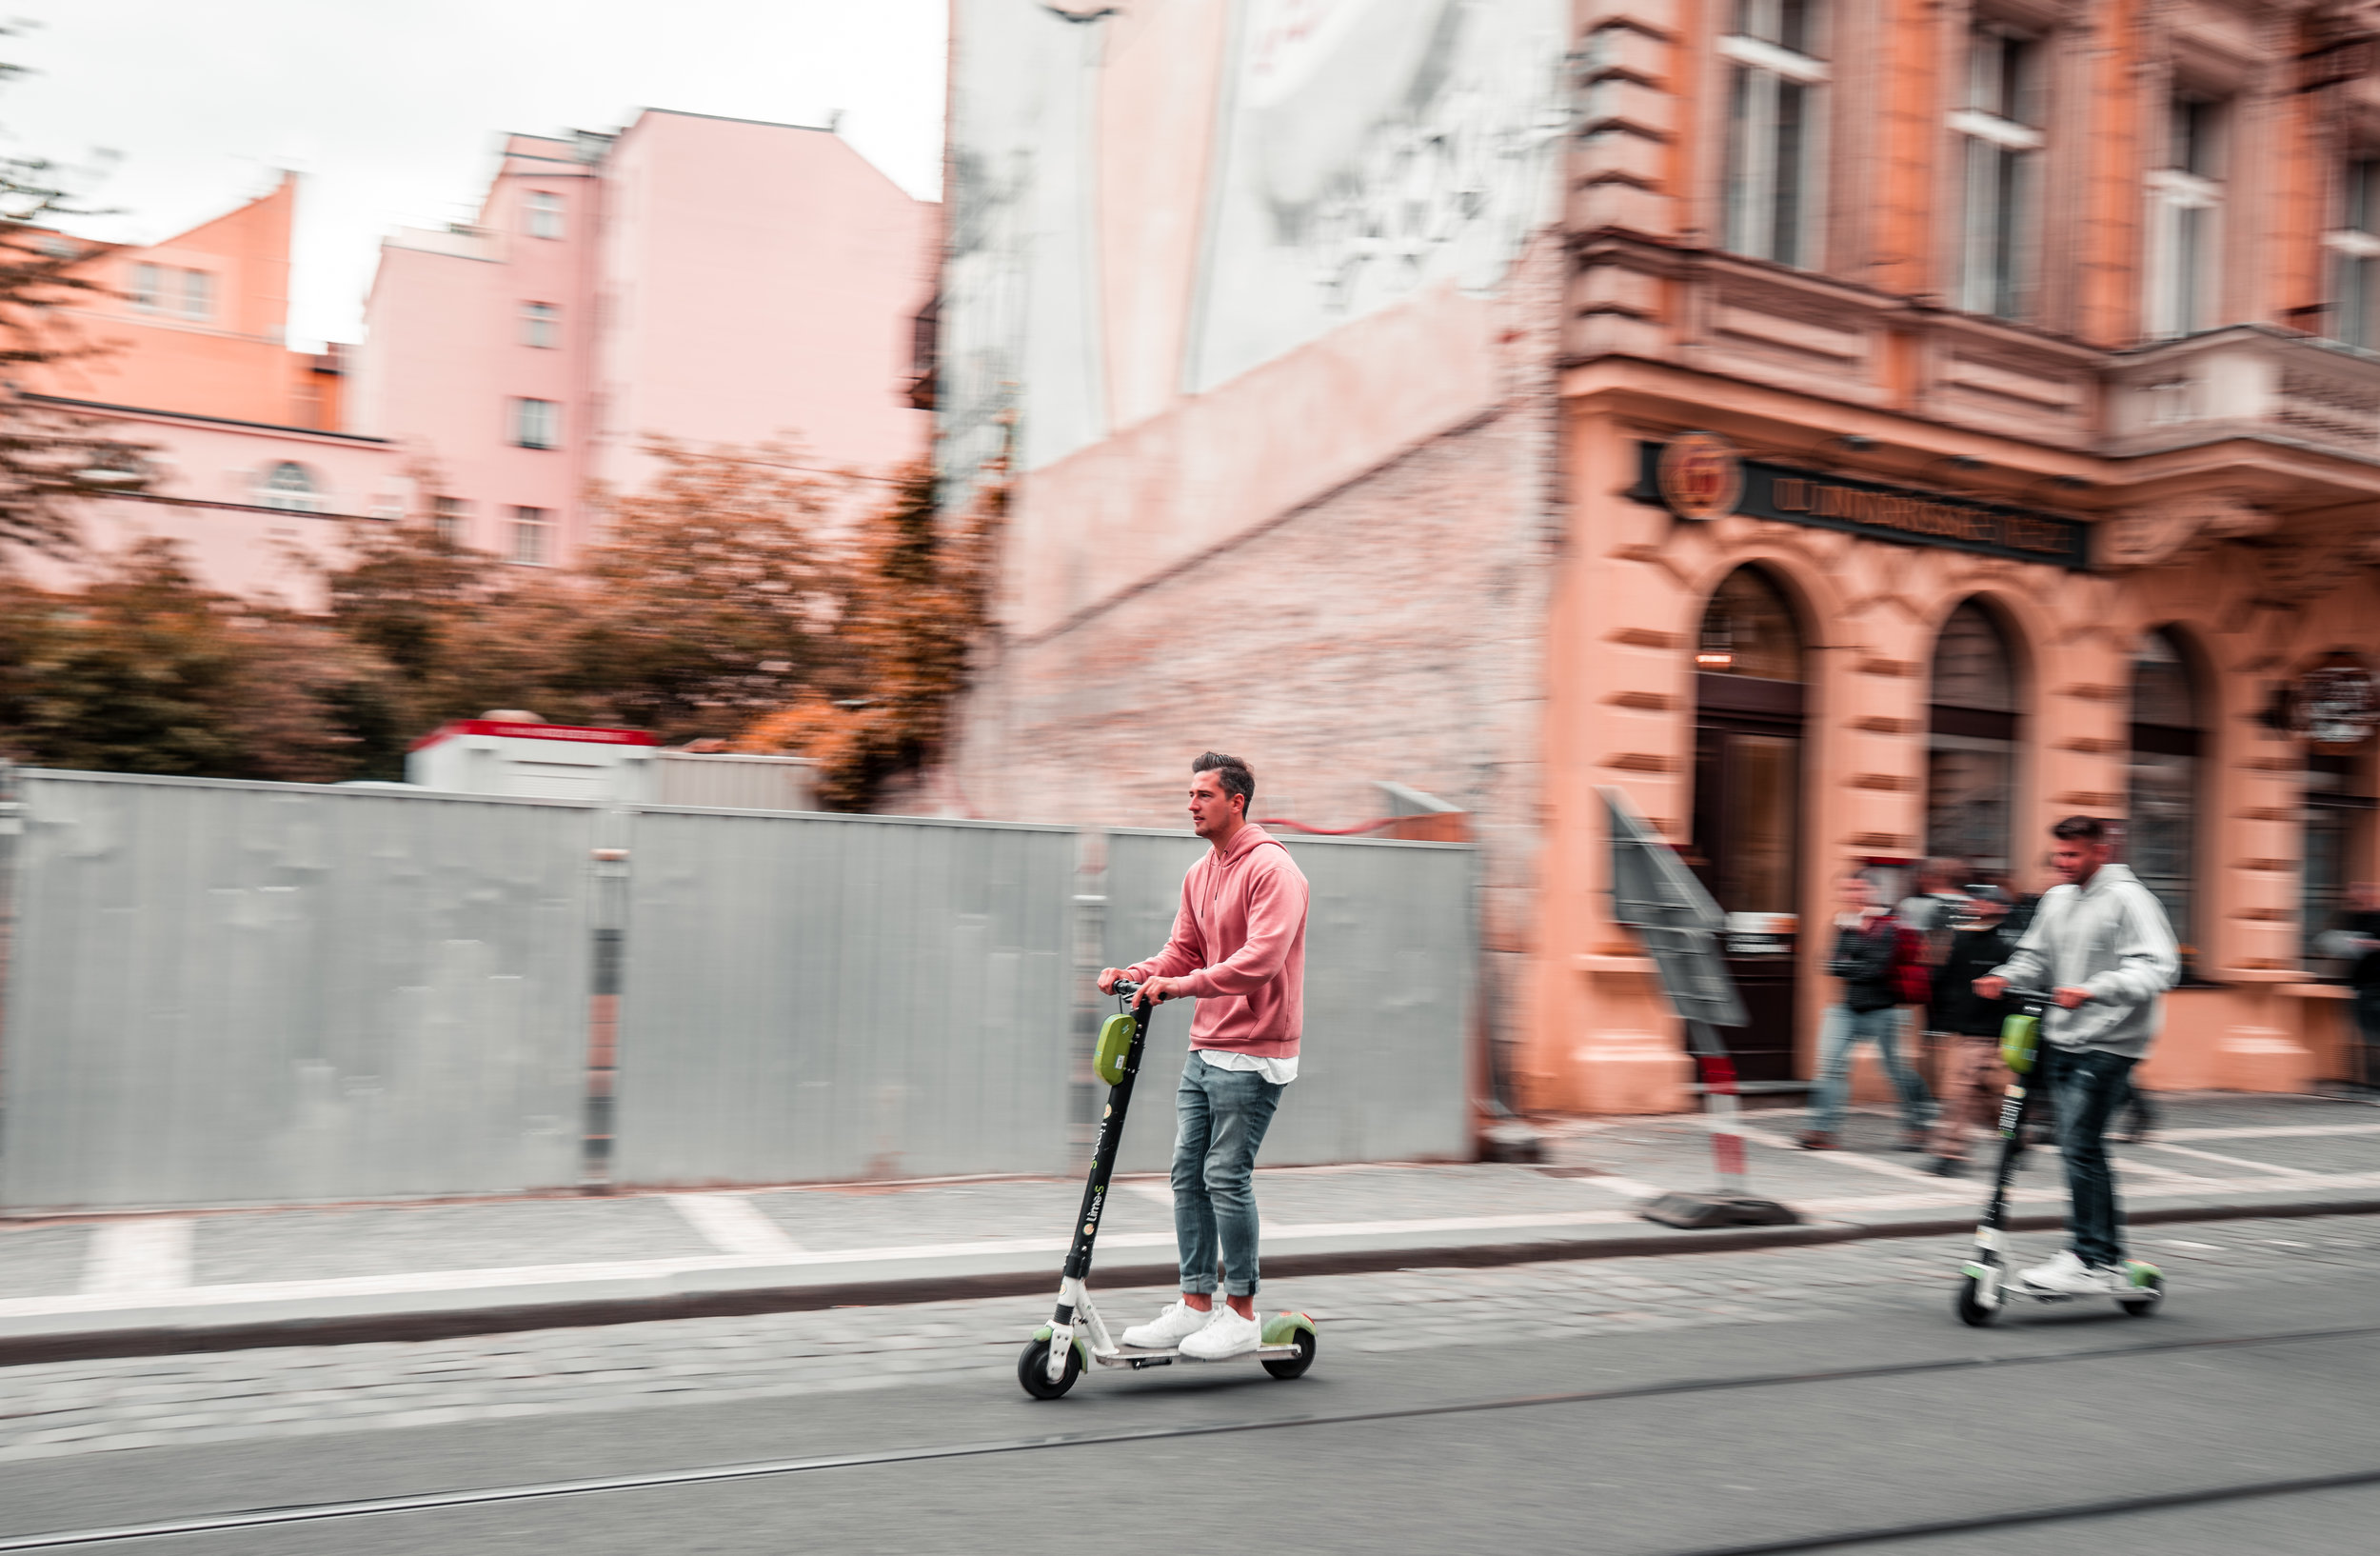 PURE SCOOTERS ACQUIRES LONDON ELECTRIC SCOOTERS AS PART OF AMBITIOUS GROWTH STRATEGY -